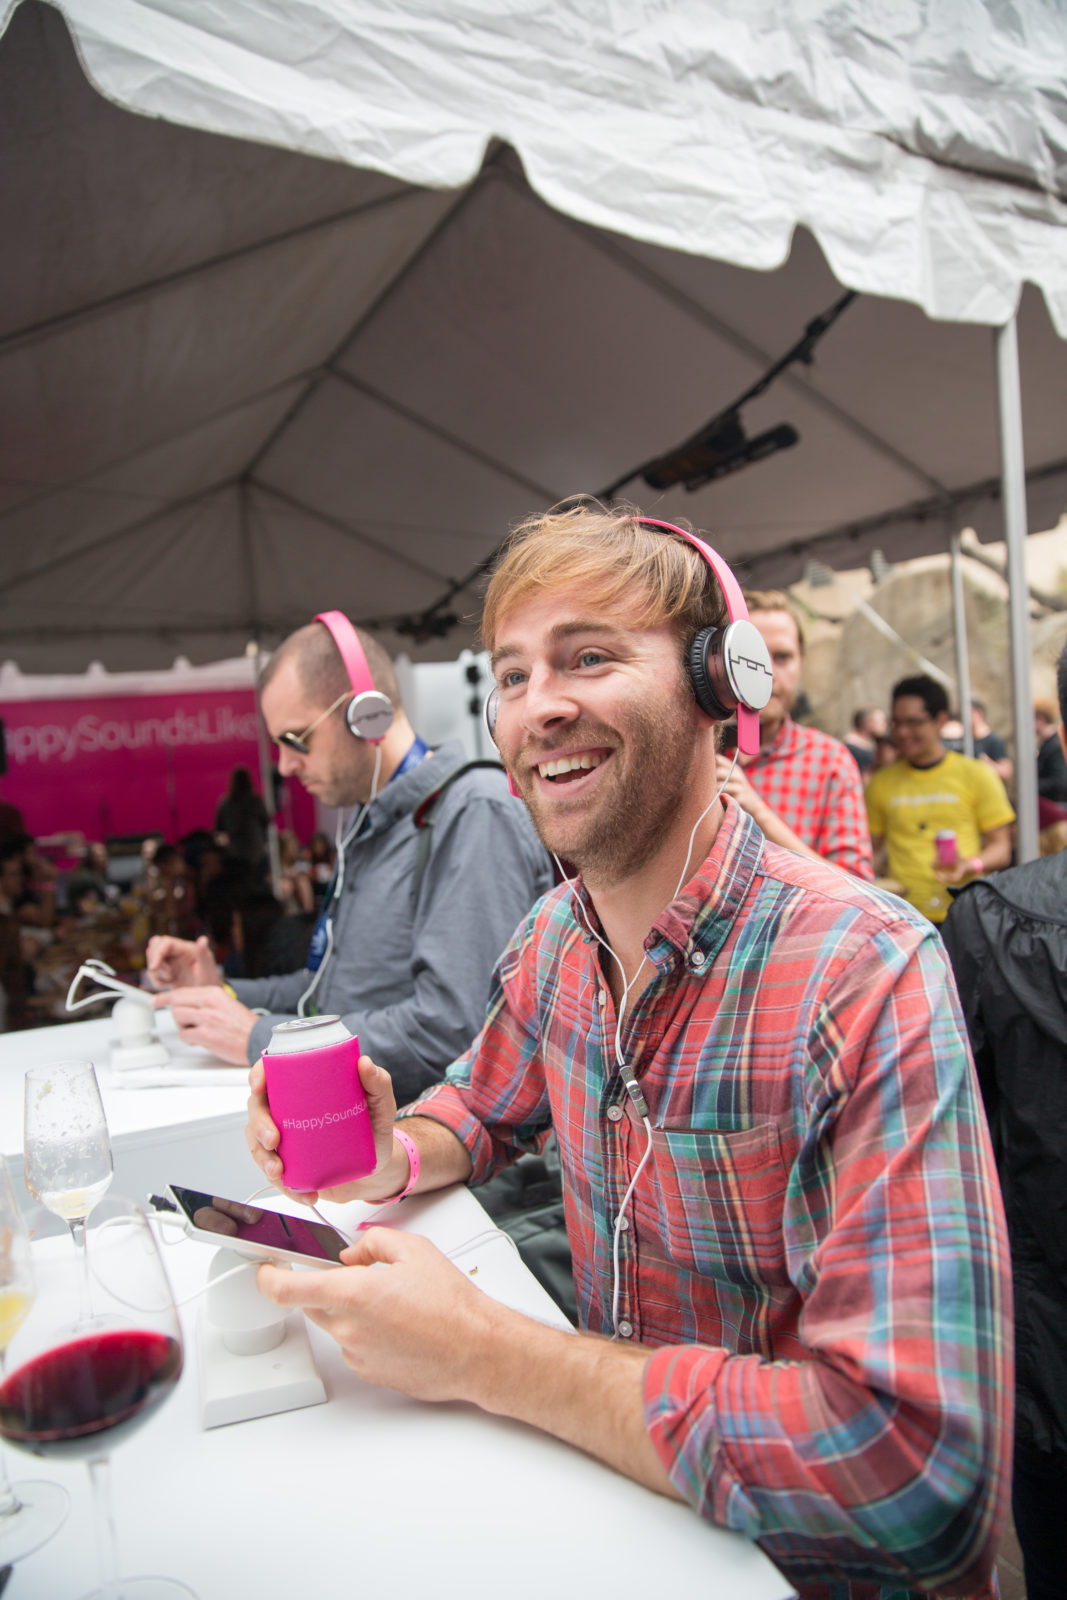 International Day of Happiness at the United Nations and MixRadio global launch at SXSW at Easy Tiger Patio on March 20, 2015 in Austin, Texas.